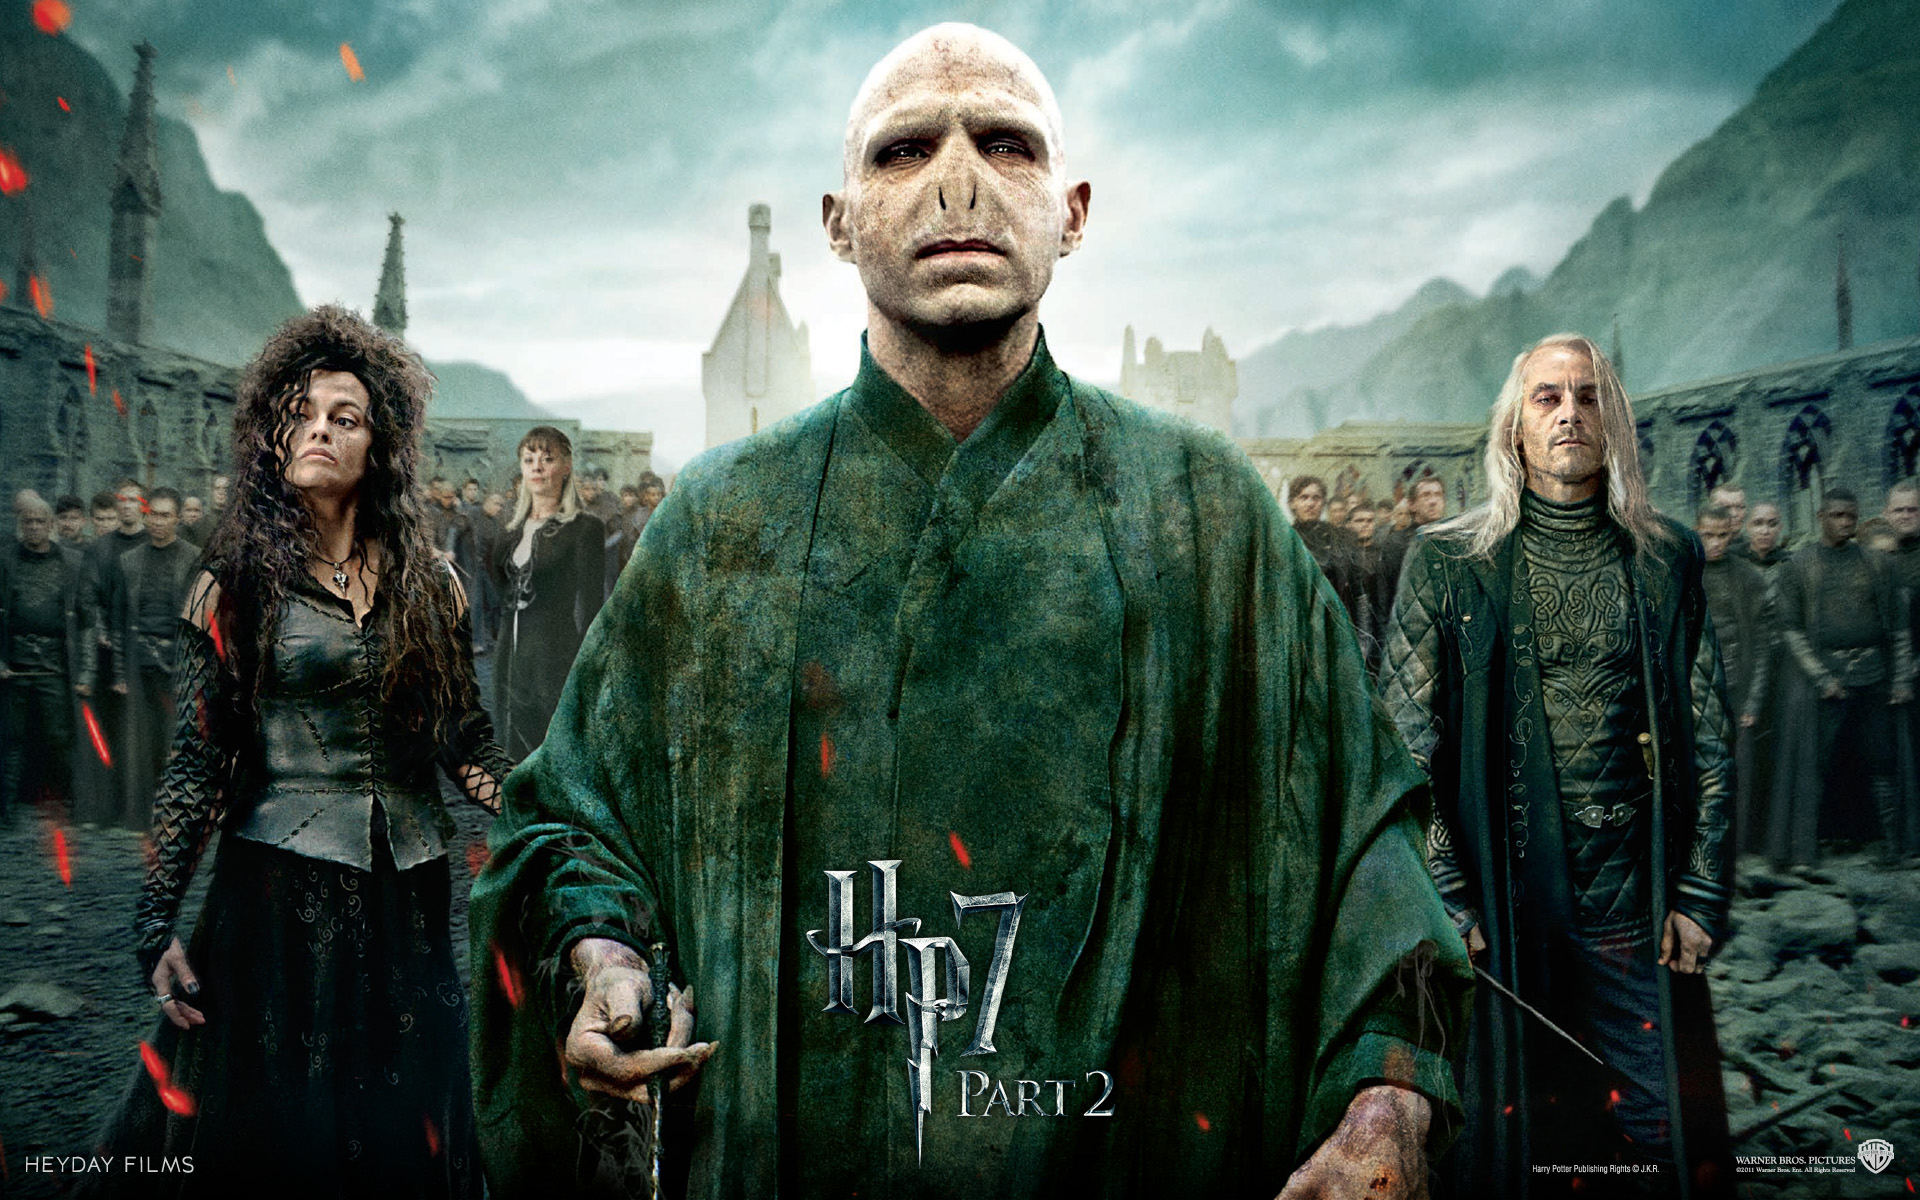 Wallpaper Harry Potter HP7 Draco Trio des forces du Mal - Bellatrix - Voldemort - Lucius